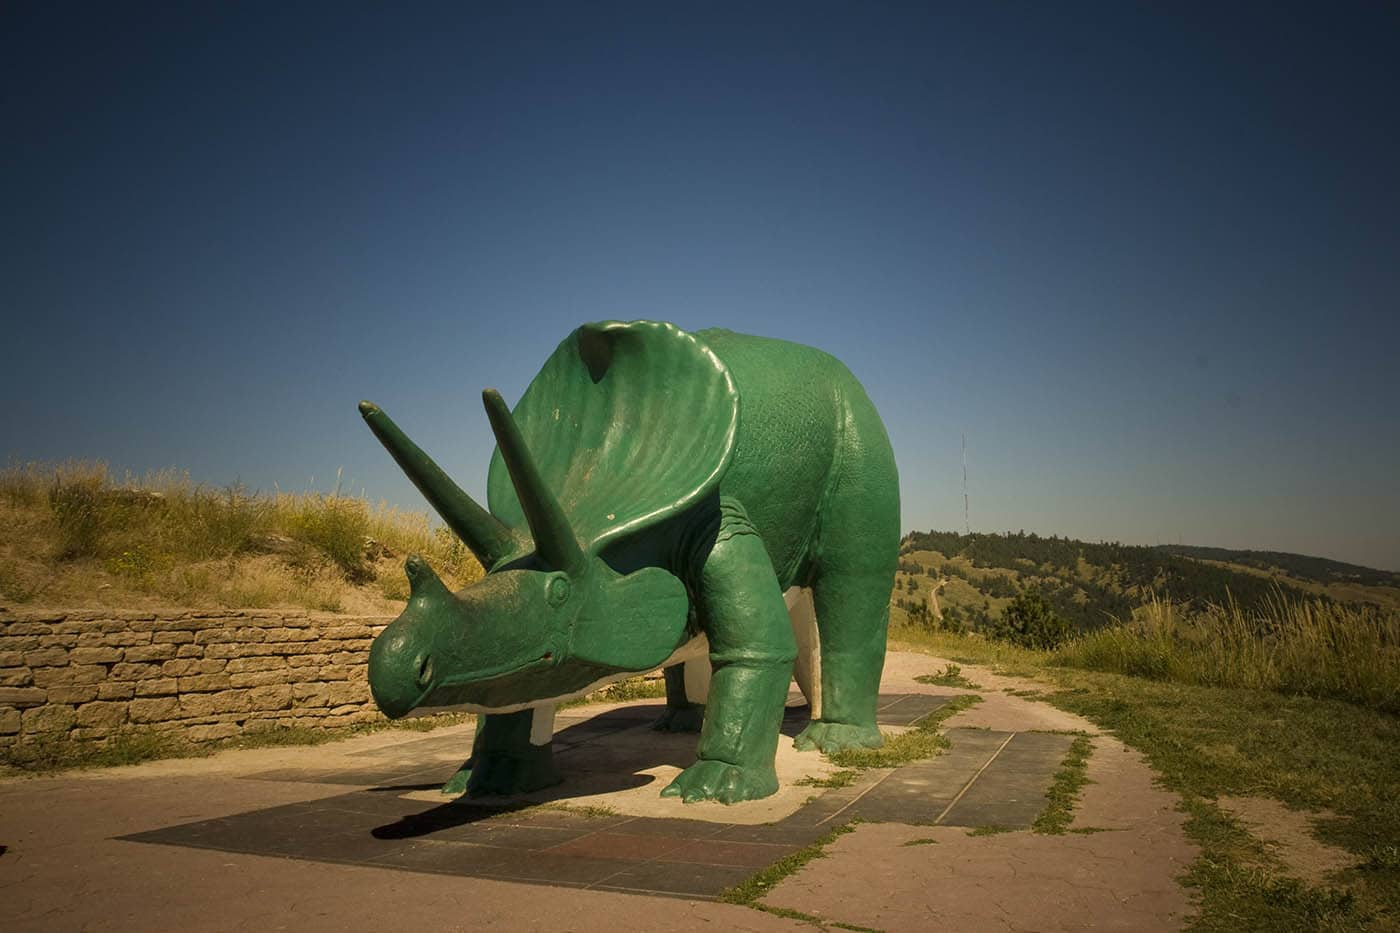 Dinosaur Park in Rapid City, South Dakota. Labor Day Chicago to Mount Rushmore Road Trip.